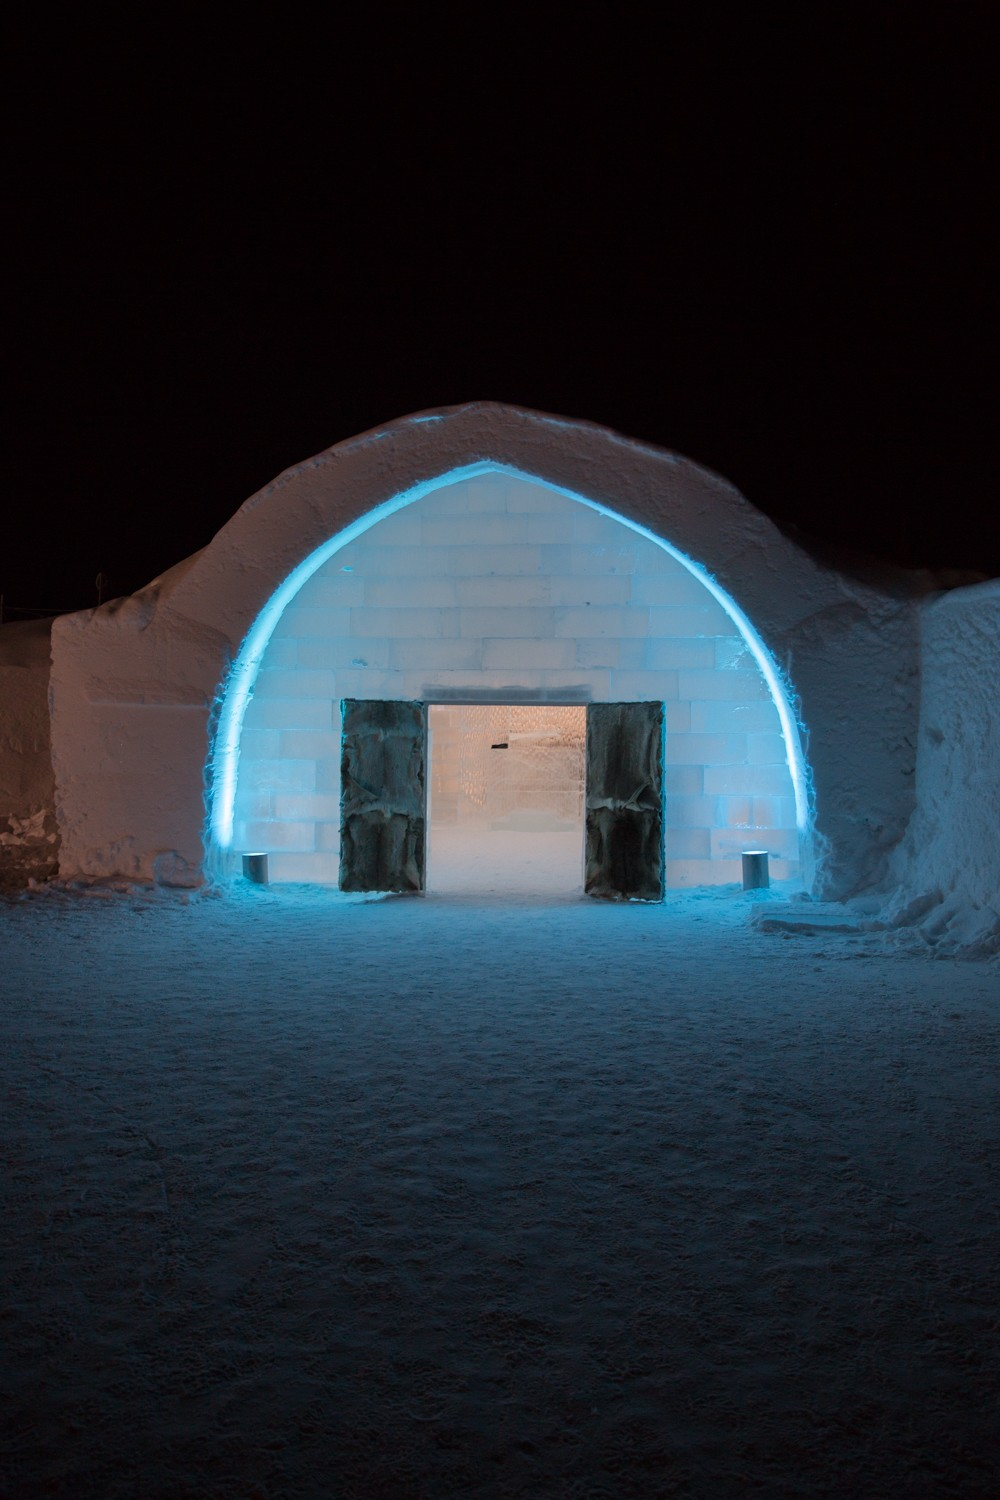 Glowing entrance to The Ice Hotel